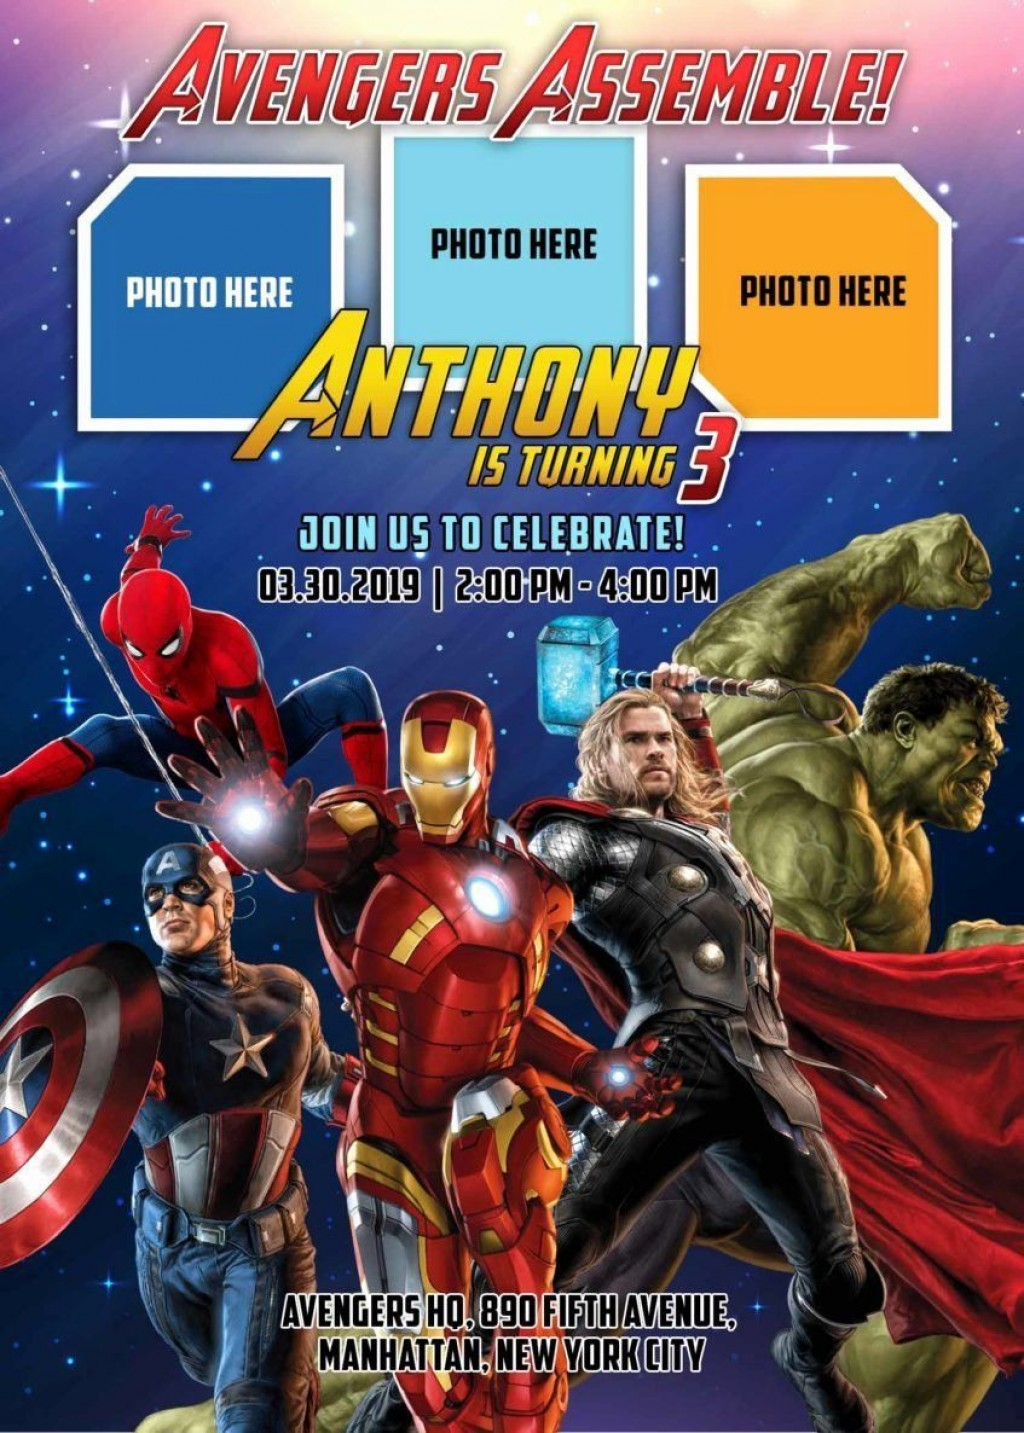 001 Archaicawful Avenger Birthday Party Invitation Template Free Example  InviteLarge